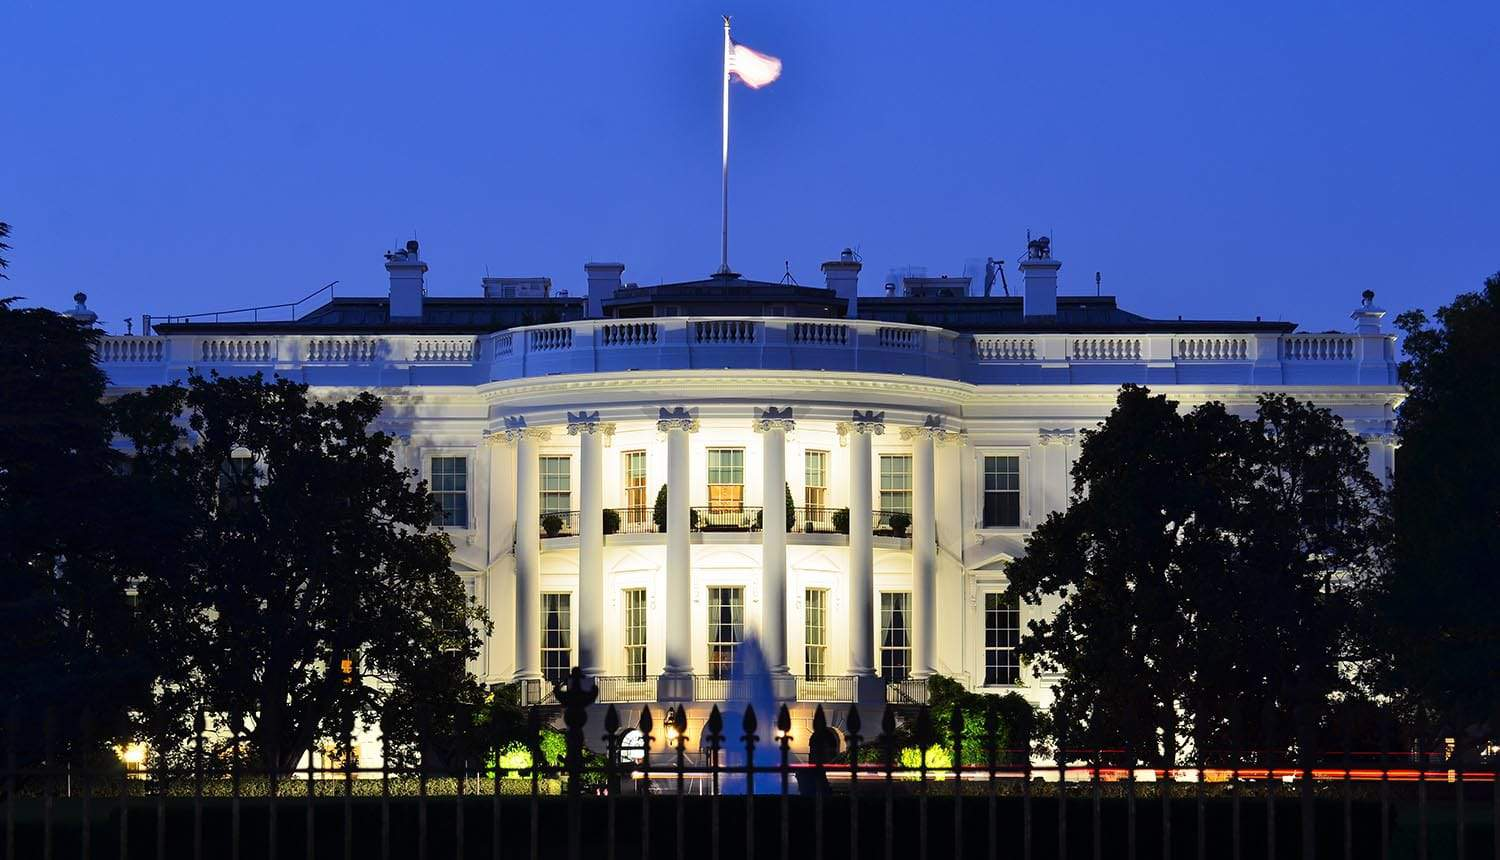 The White House at night showing WeChat and TikTok ban